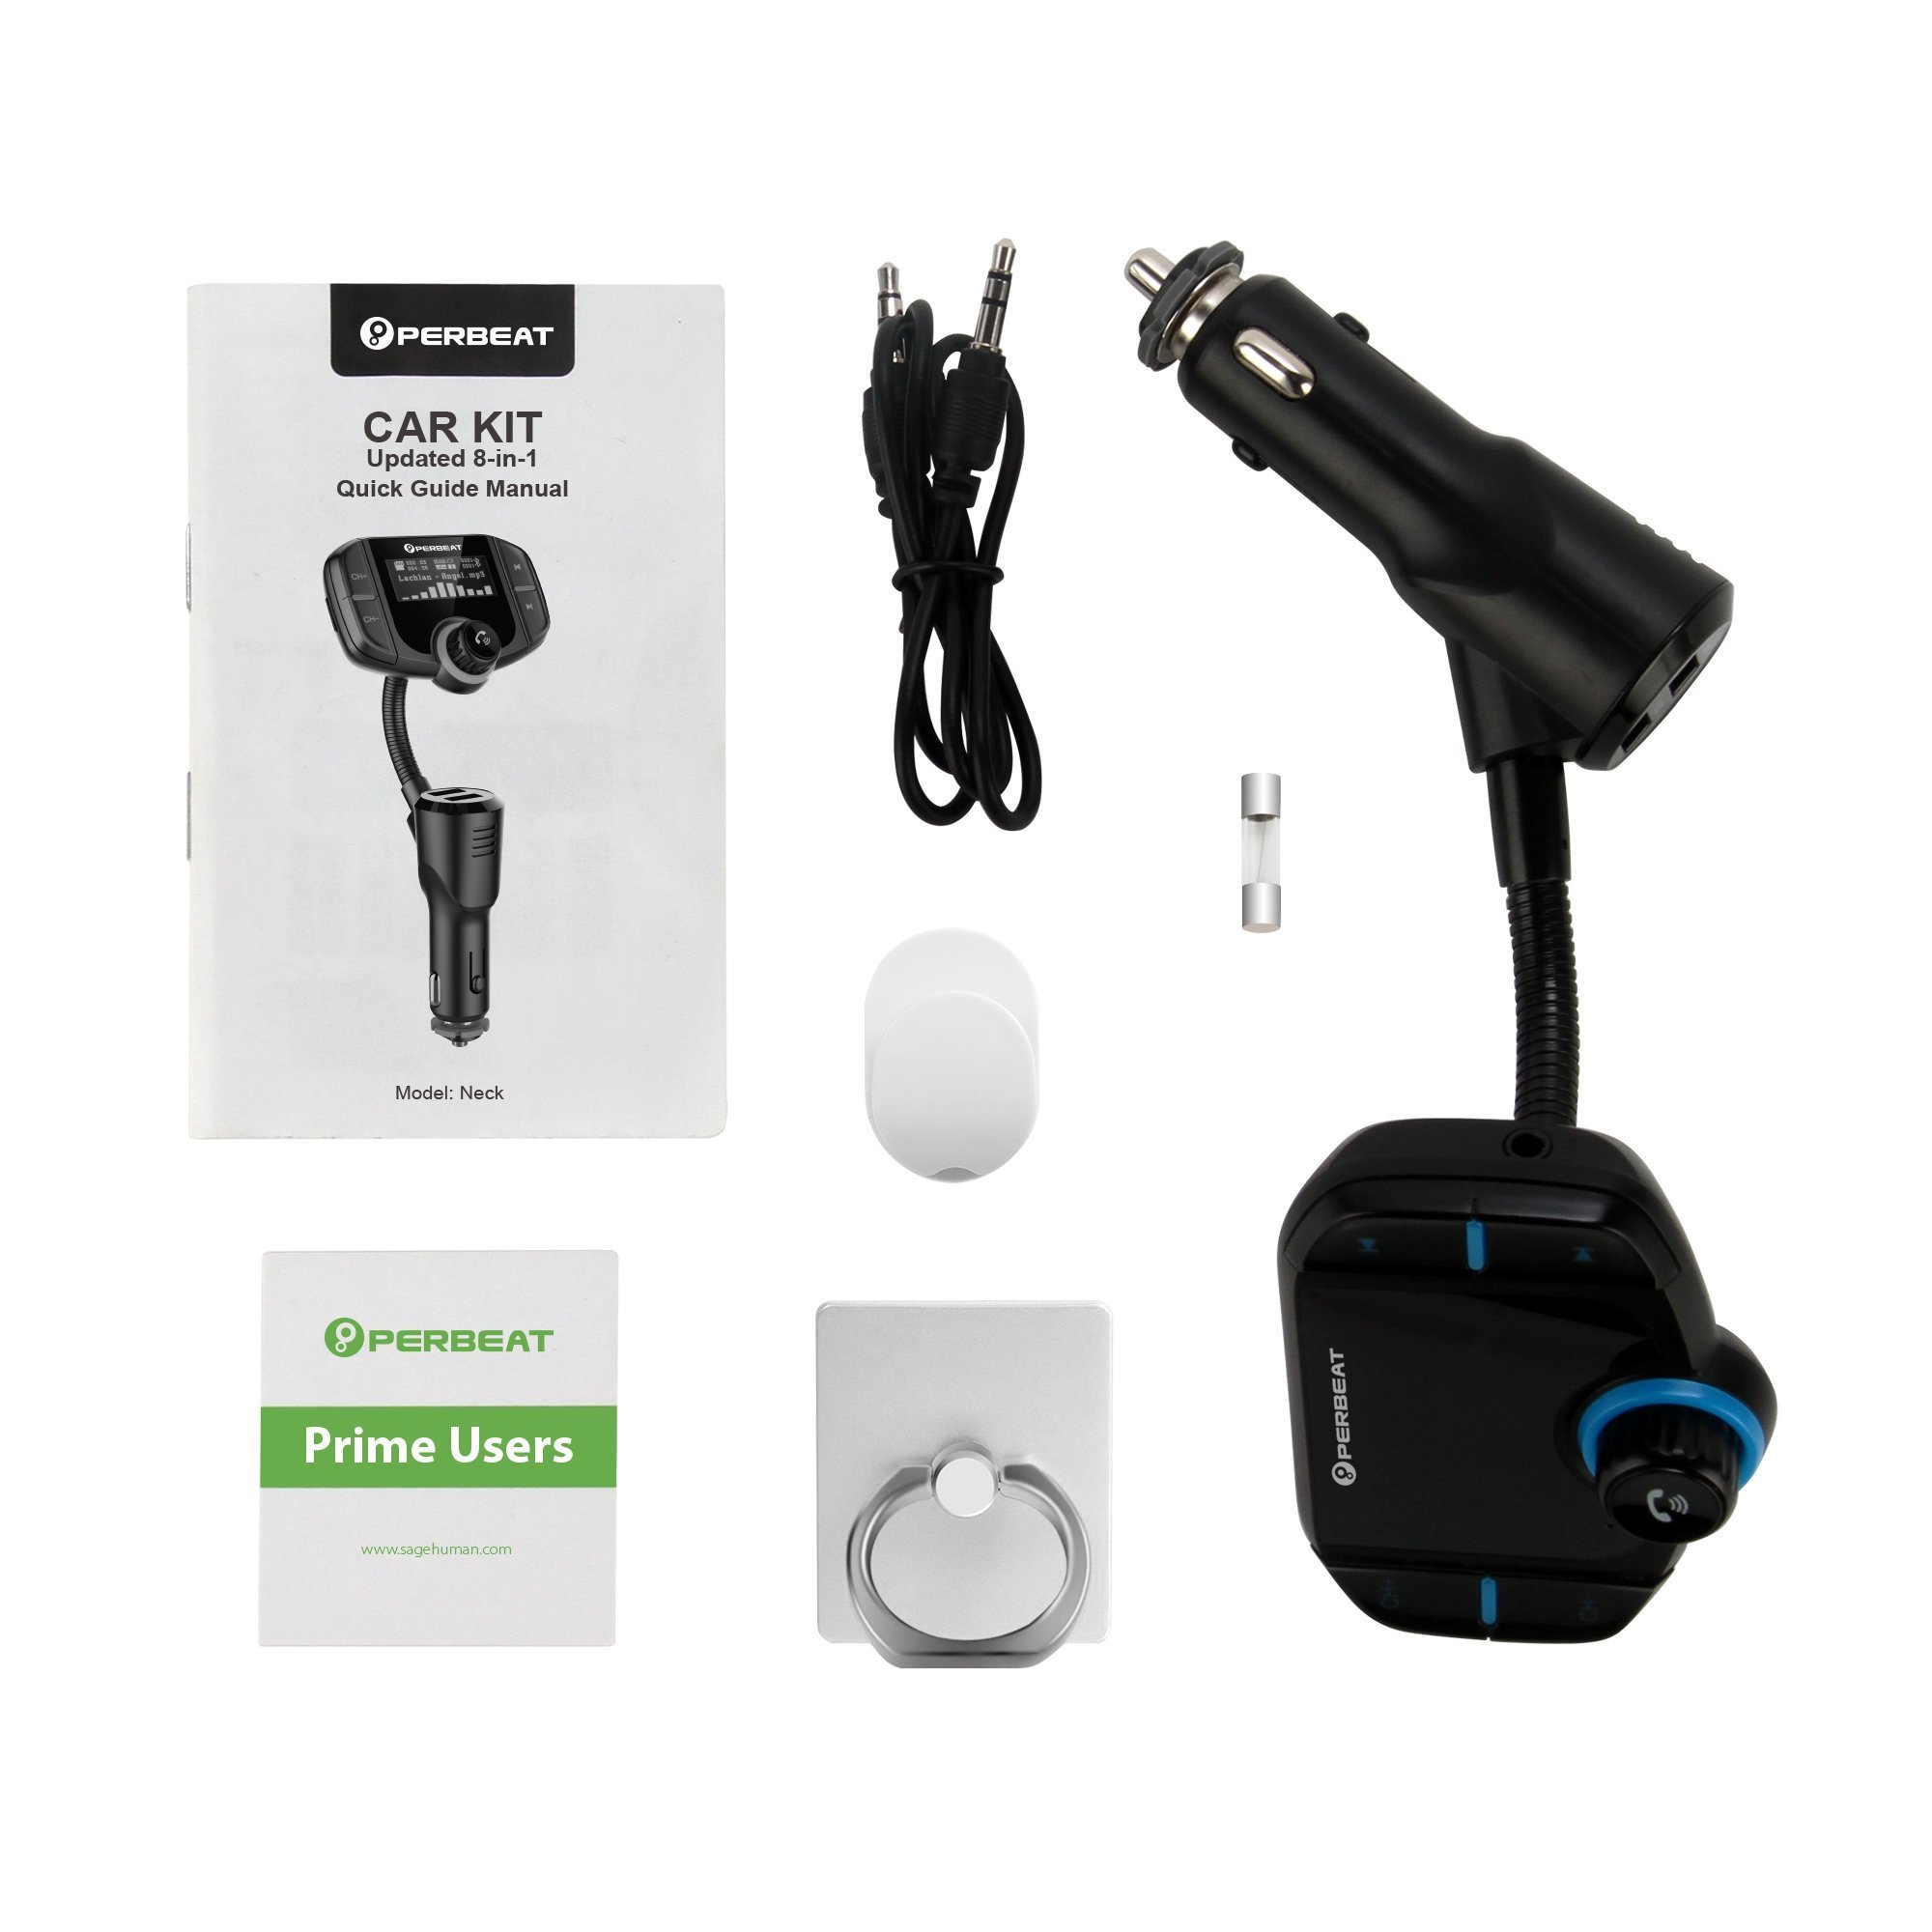 [New Version 2] Bluetooth FM Transmitter for Car, Perbeat Wireless Aux Adaptor Receiver Hands Free Car Kit 2.4A Fast Charger with 1.7Inch Larger Display, SD Reader, AUX In/Out for All 12-24V Cars. by Perbeat (Image #8)